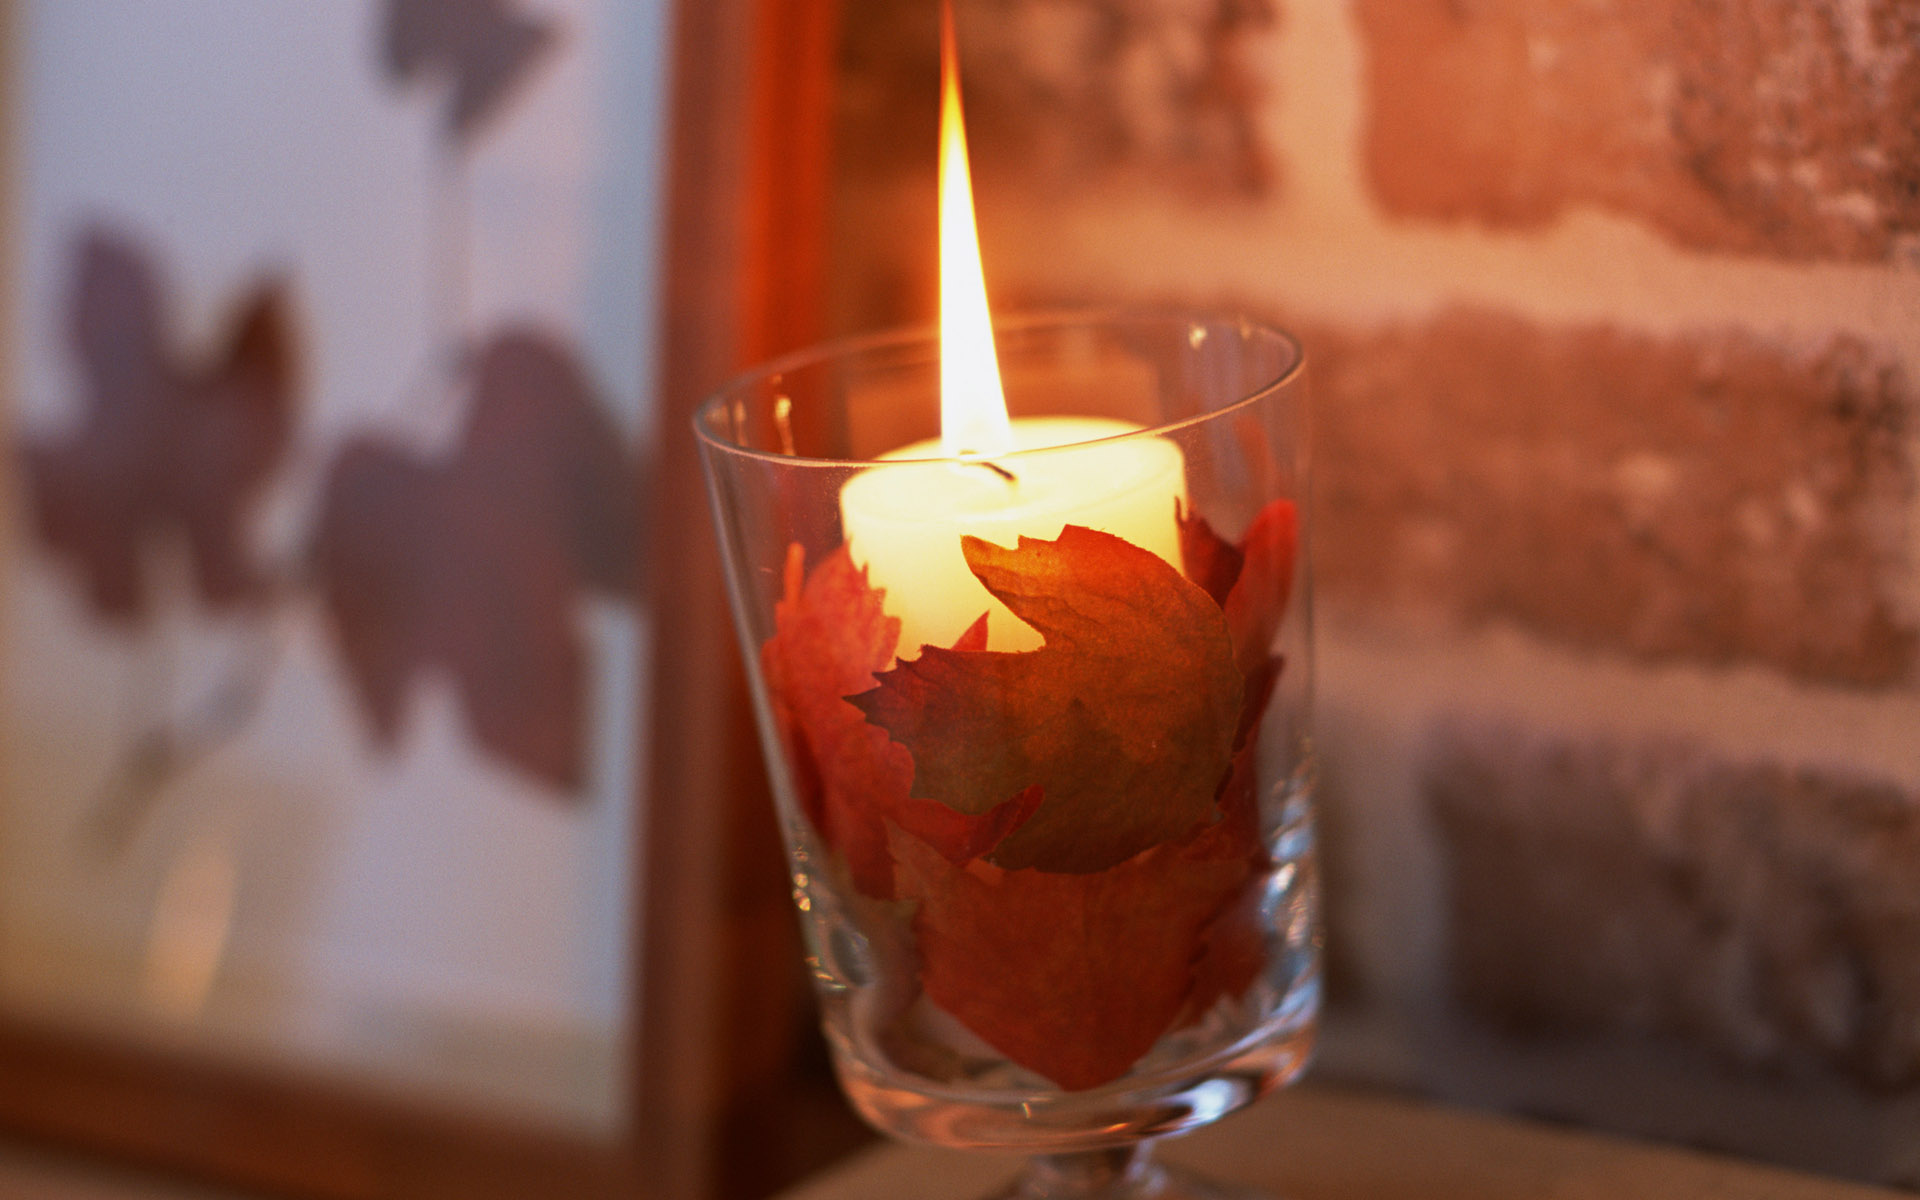 Candle wallpaper 13024